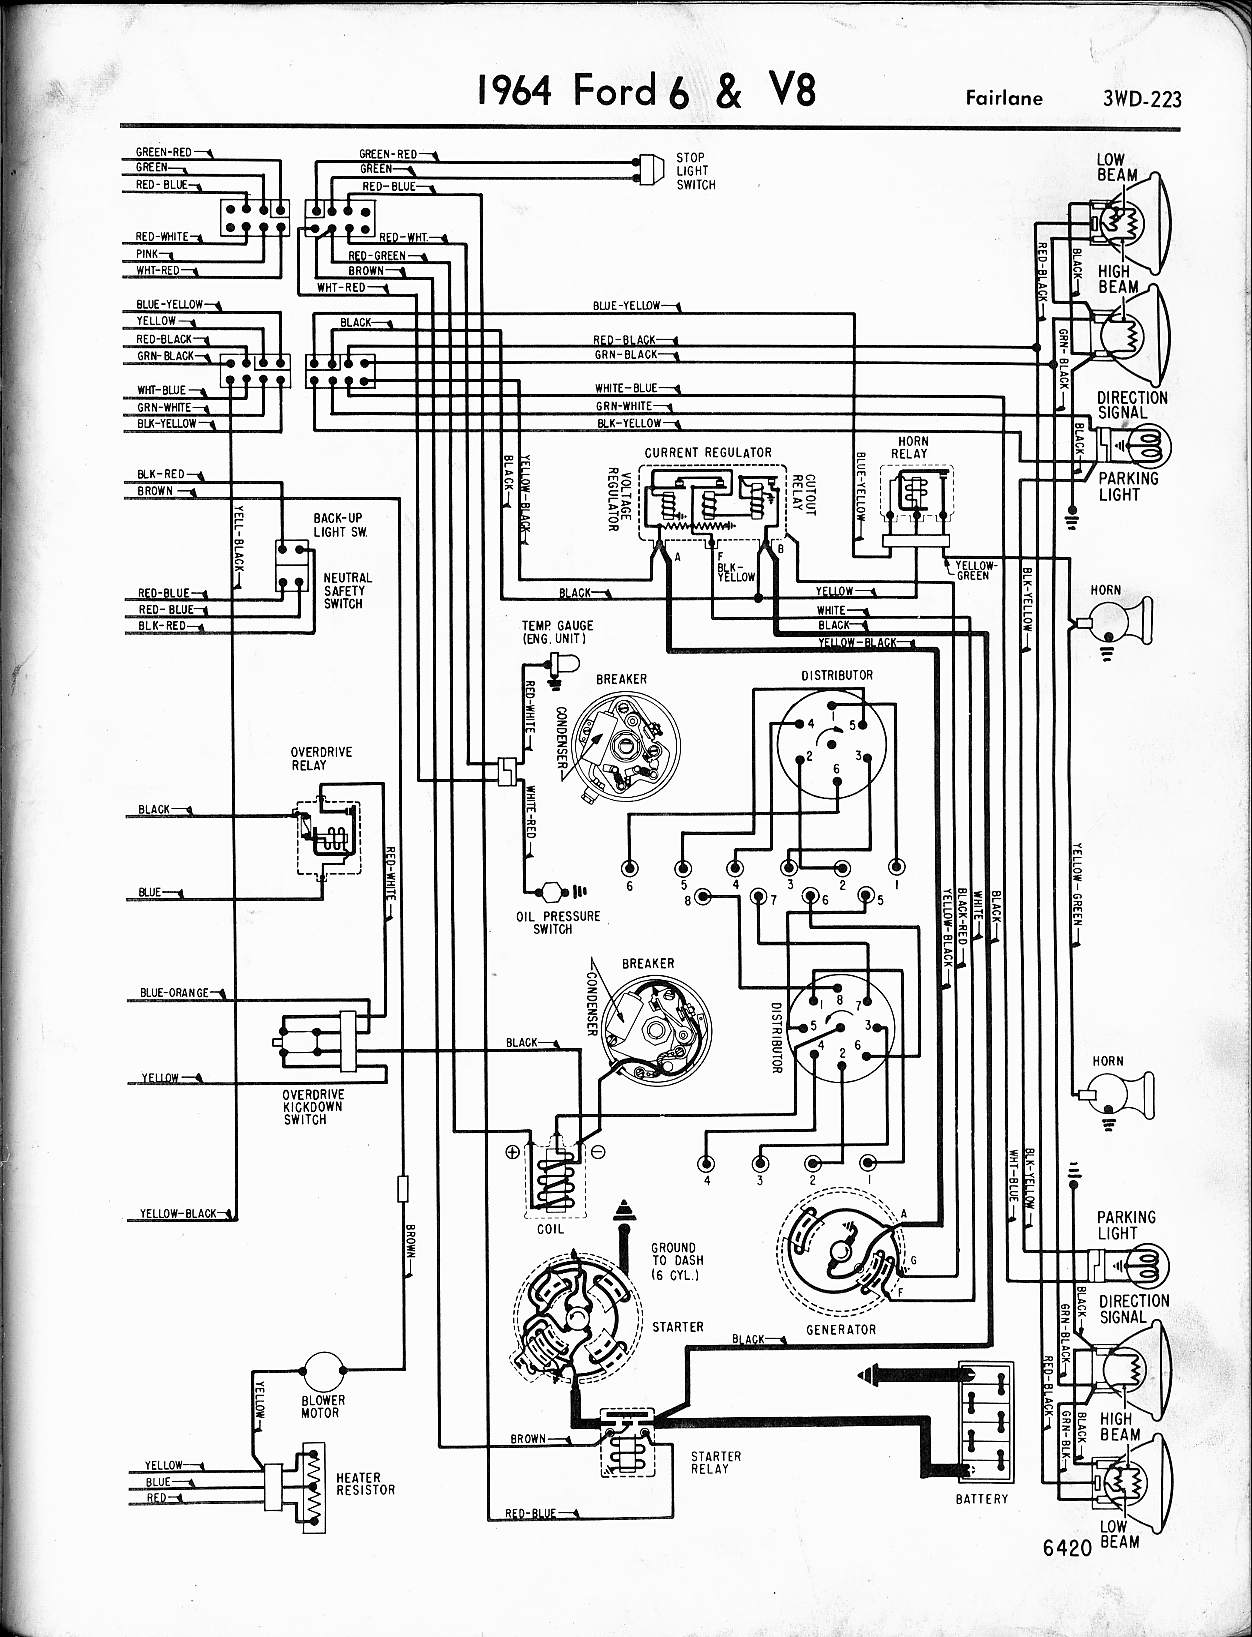 64 ford wiring diagram wiring data diagram rh 11 meditativ wandern de